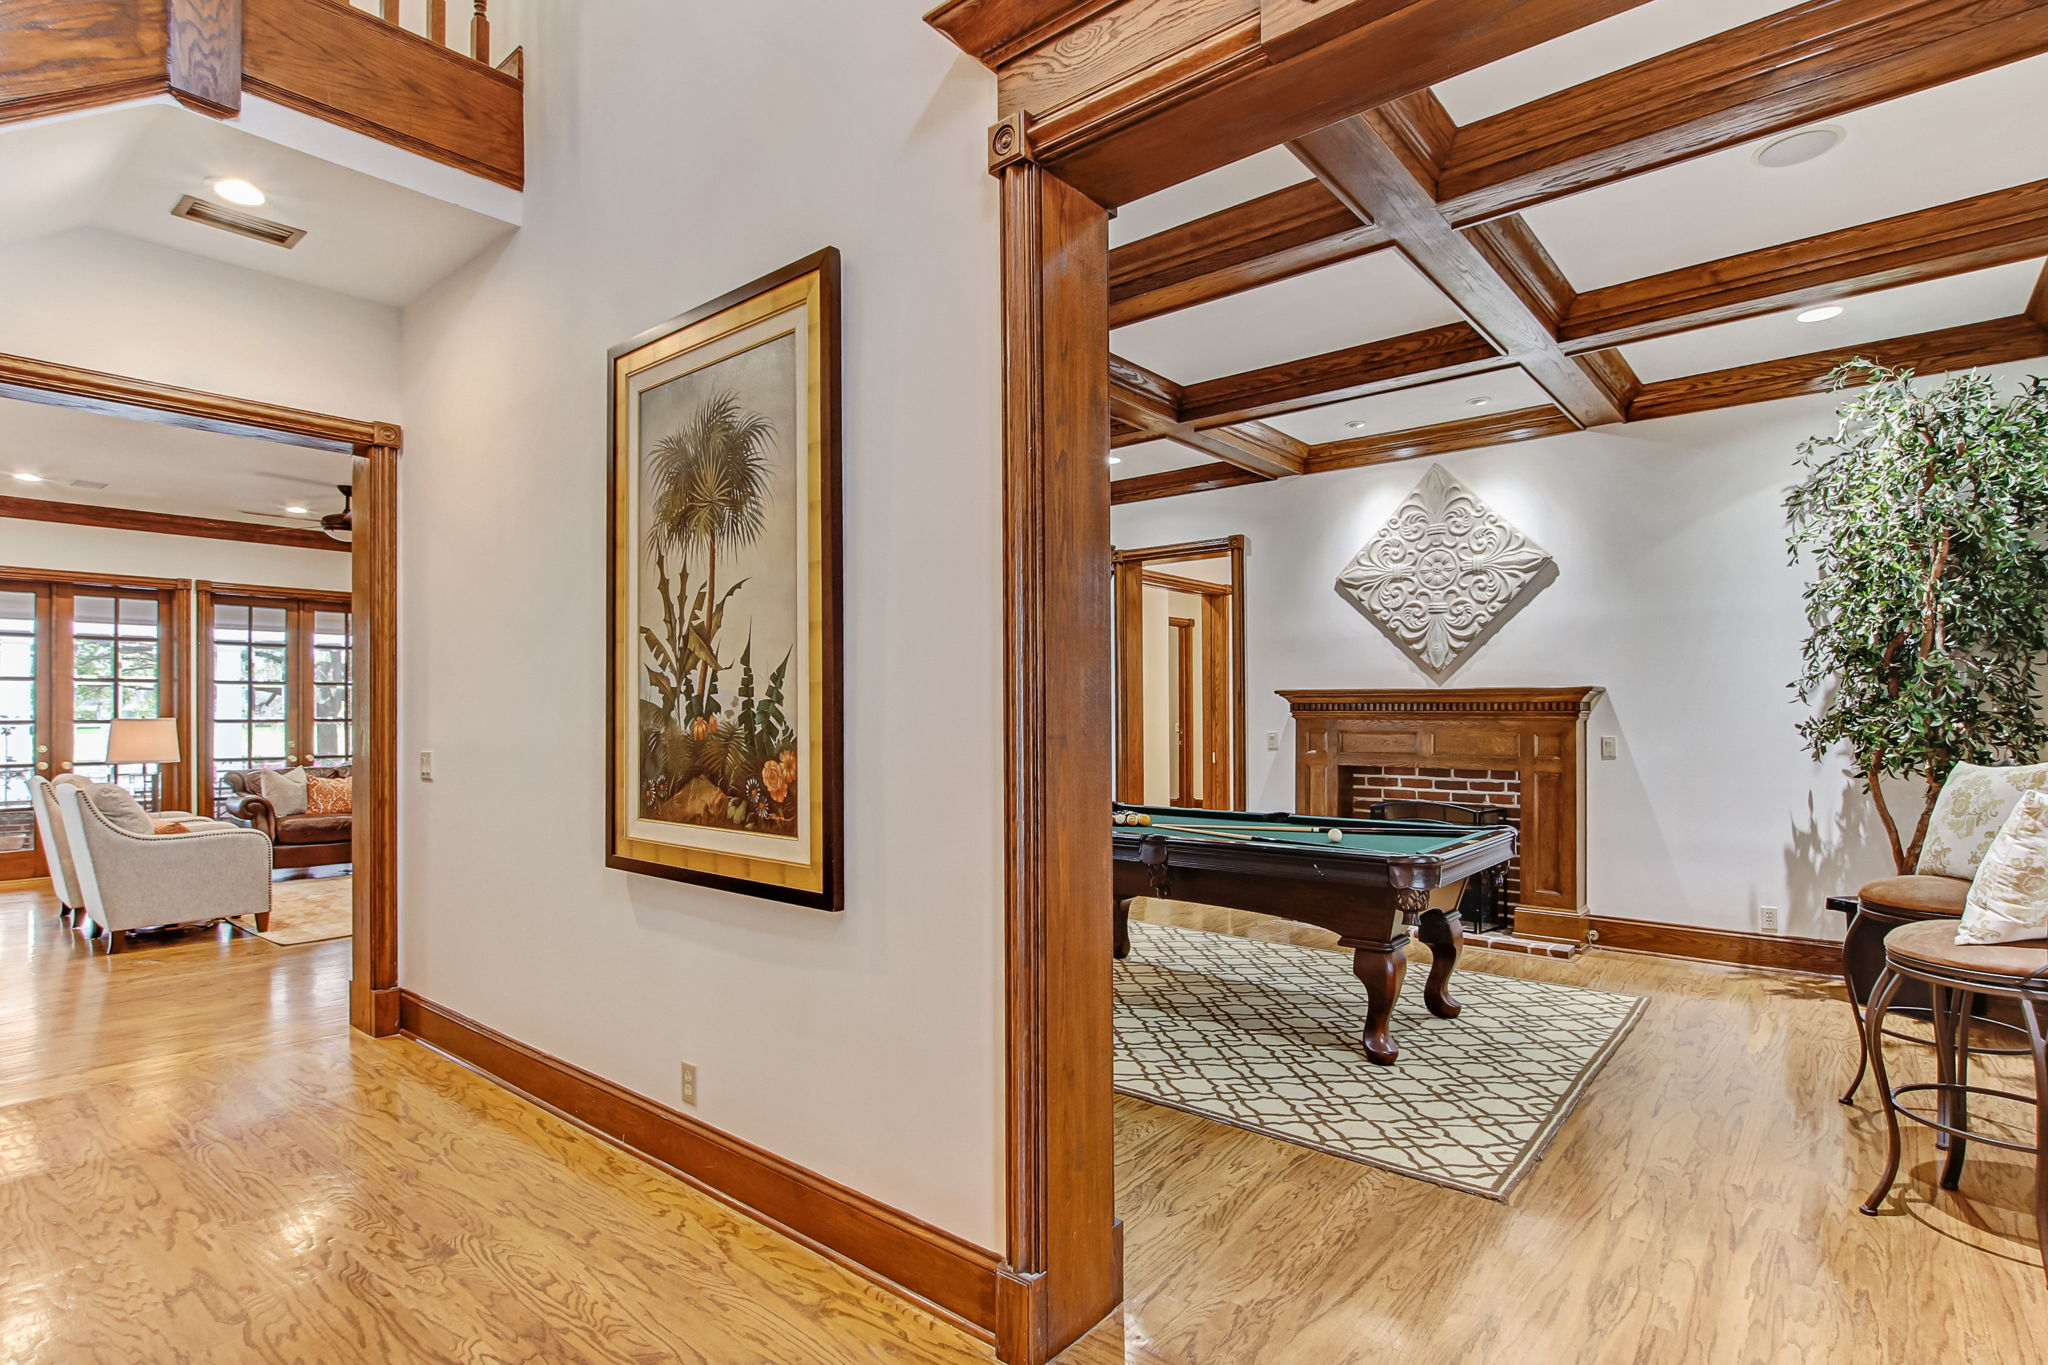 Entry Hall, Living & Family Room